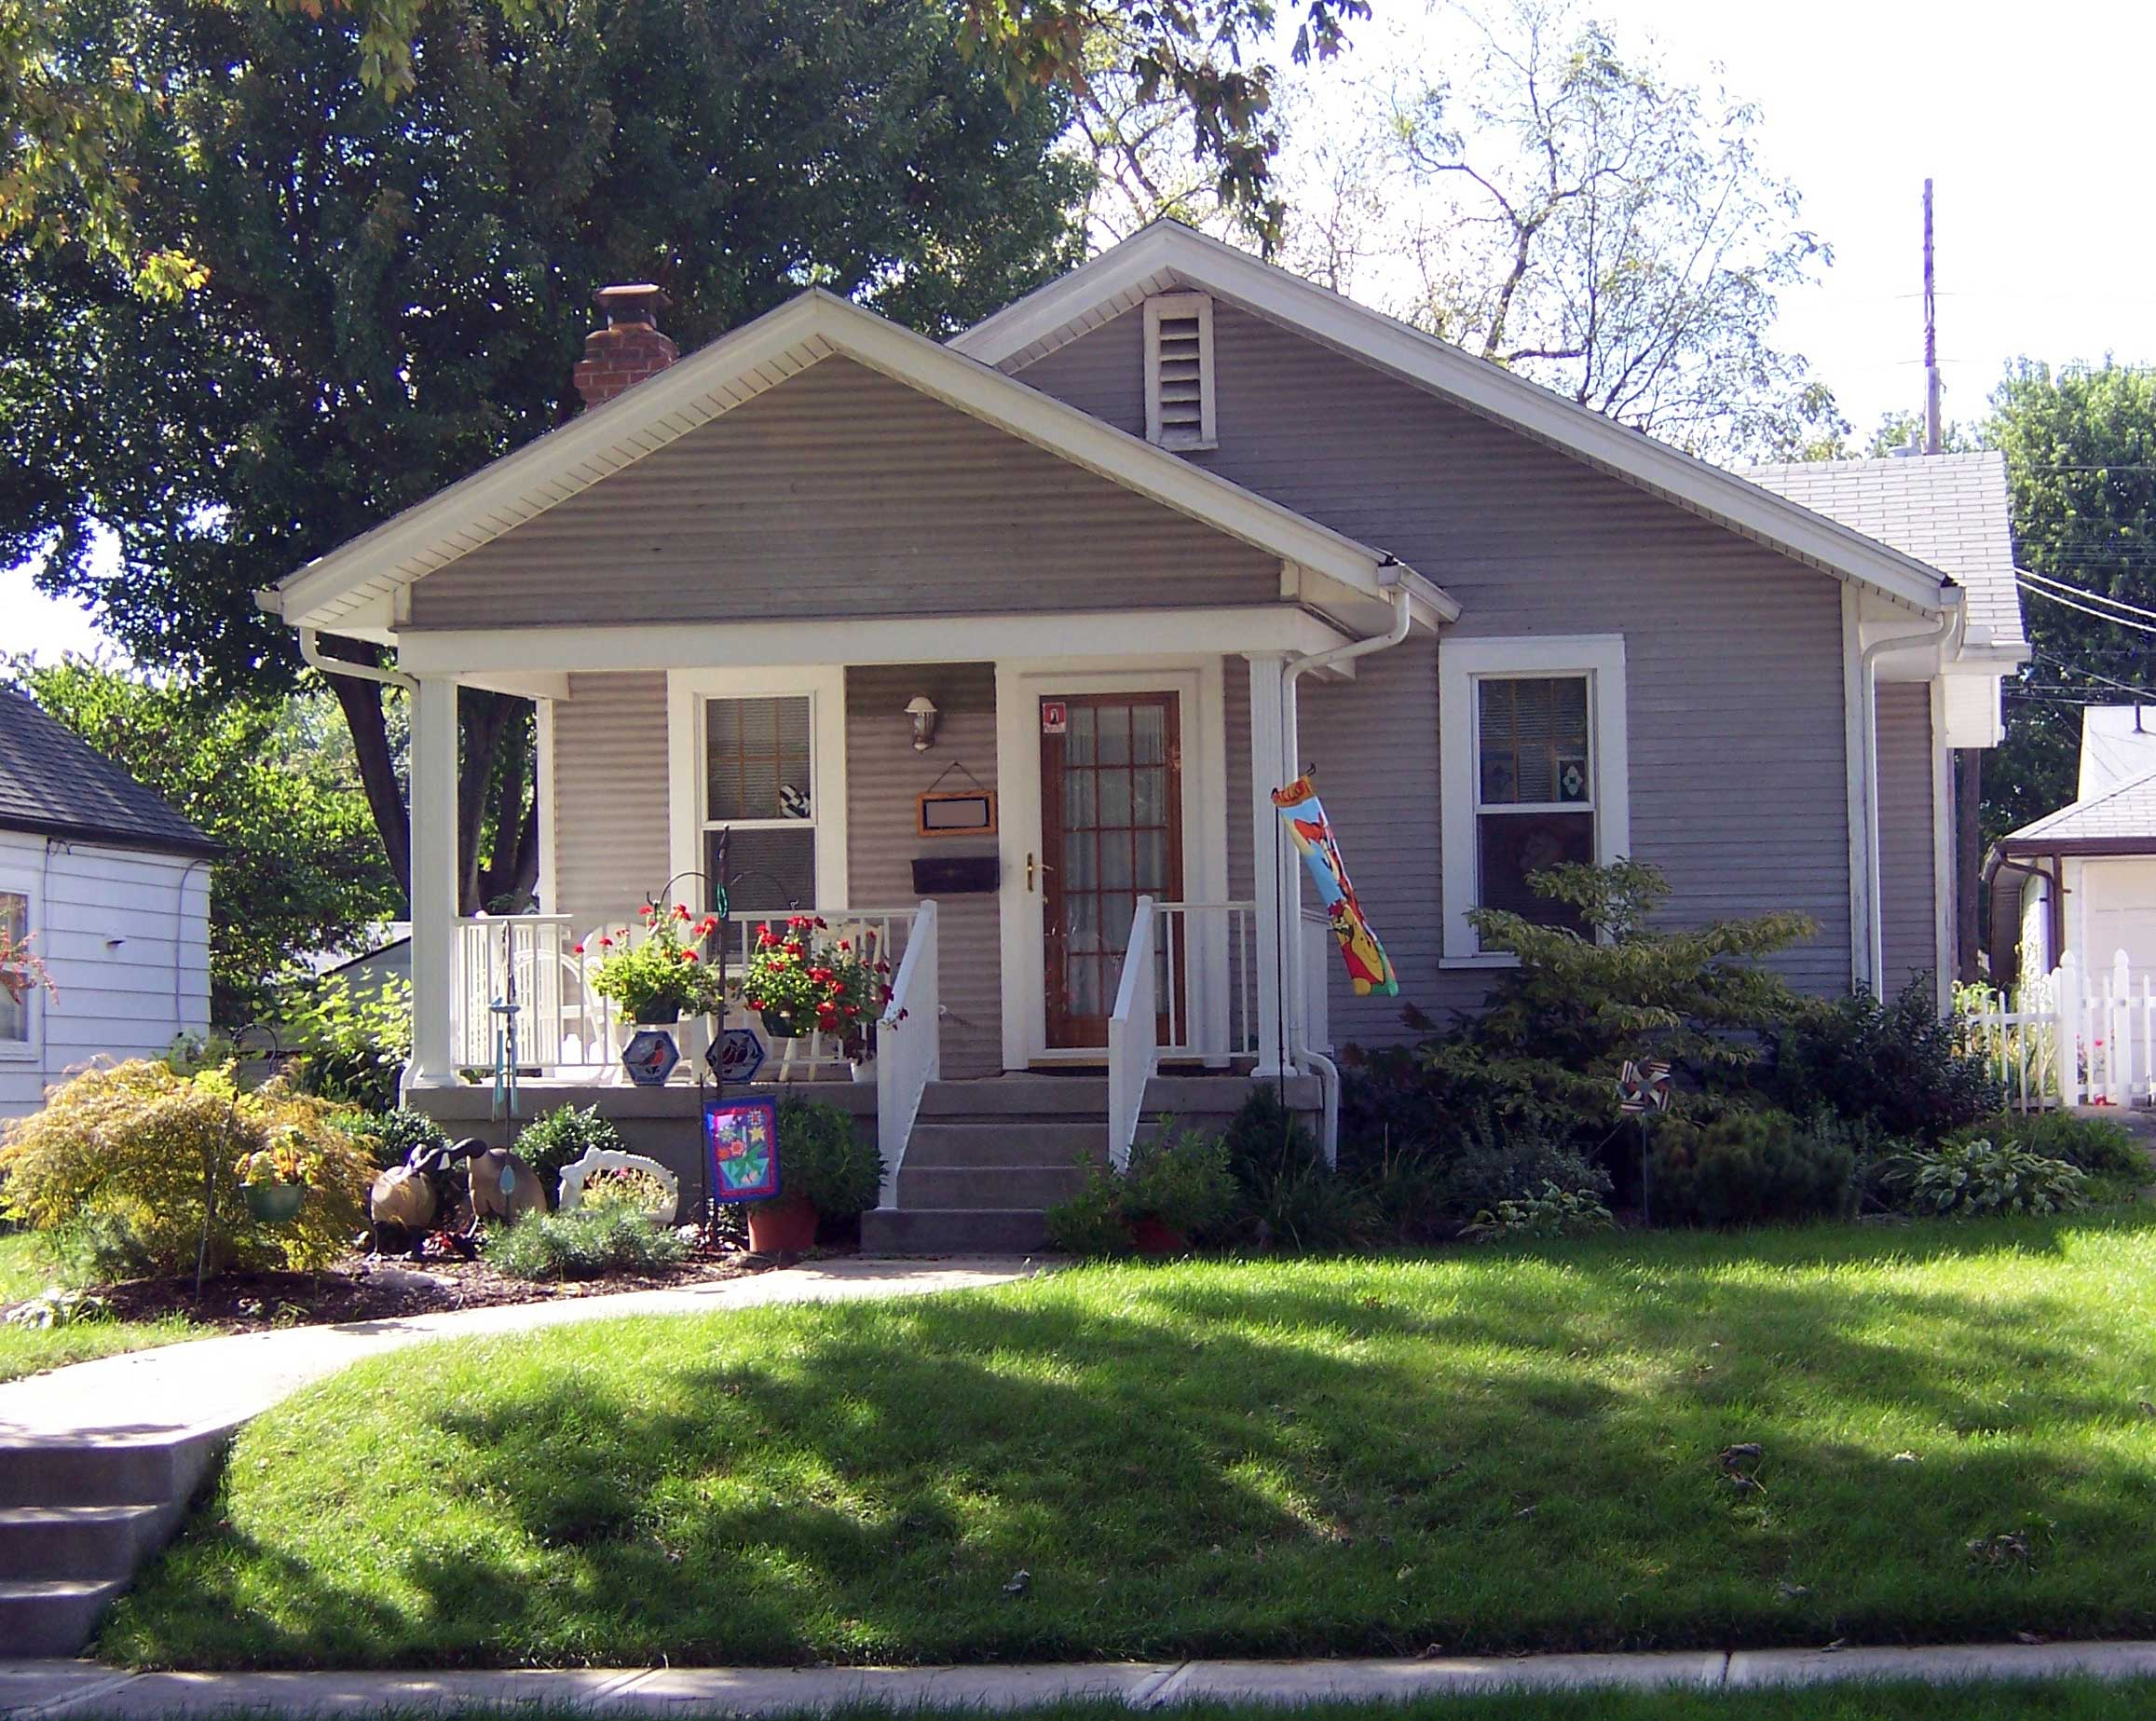 NAYA Single family home pdx